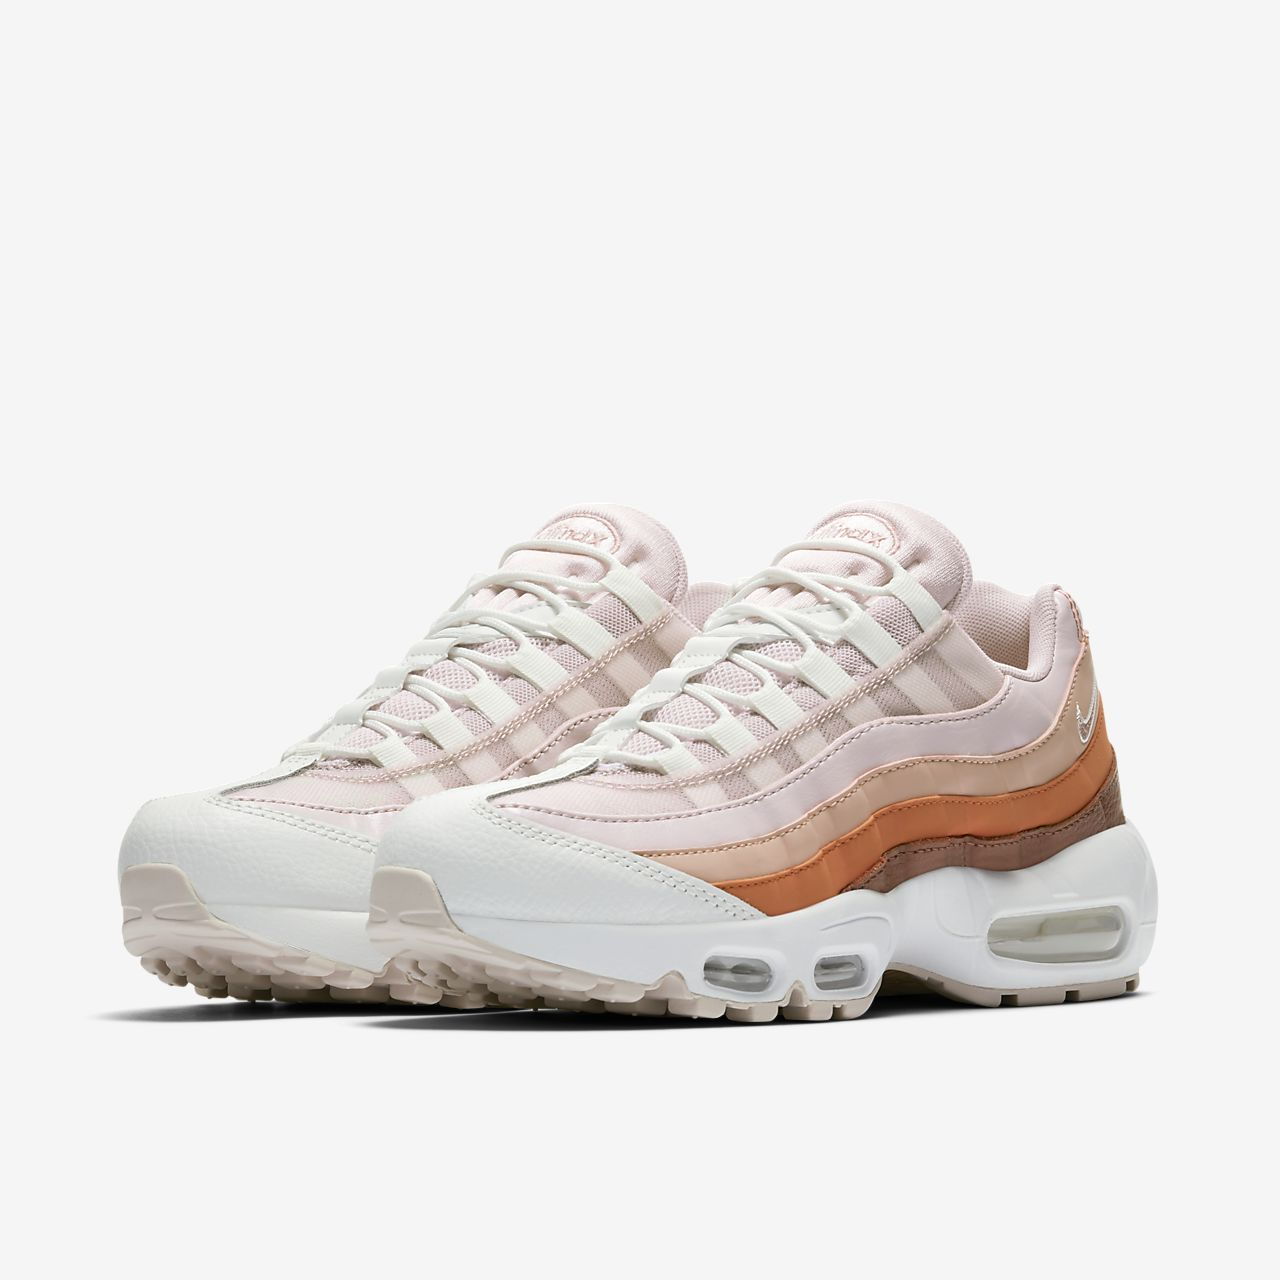 nike air max 95 og pas cher > Promotions jusqu^ 59% r duction